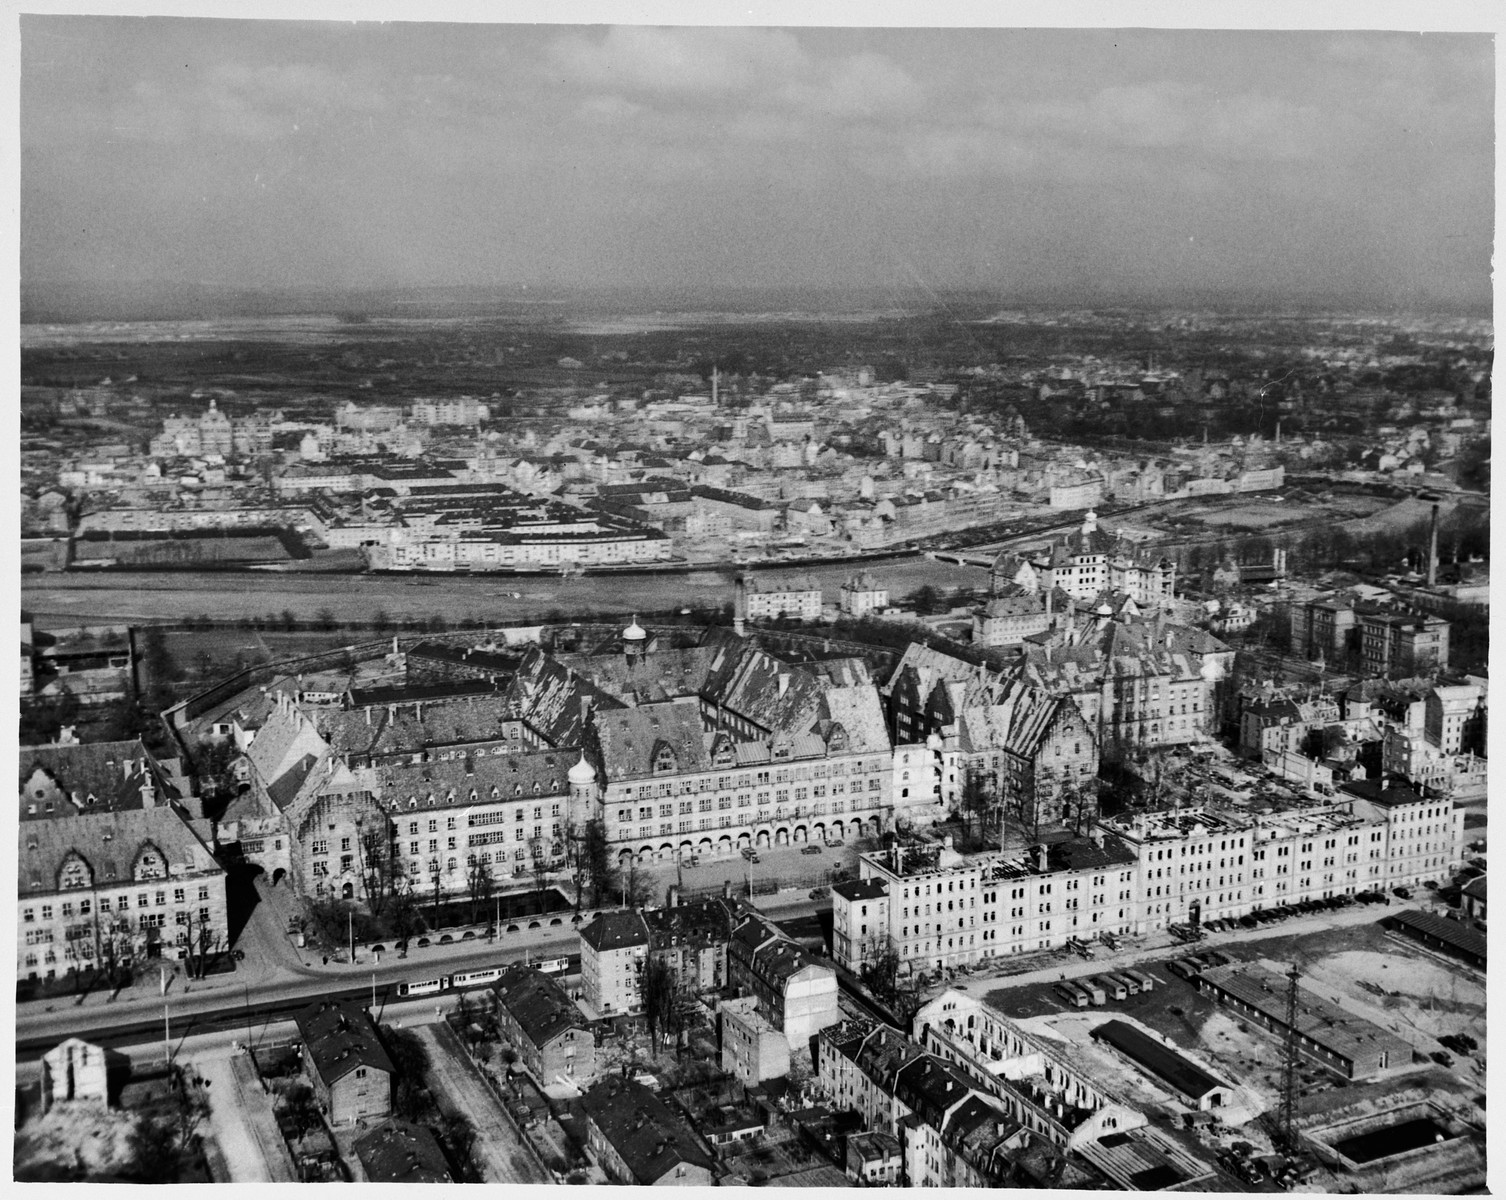 Aerial view of the Nuremberg Palace of Justice.  The lot in the foreground at the right is the Office of the Chief of Counsel Motor Pool, across the street from the court.